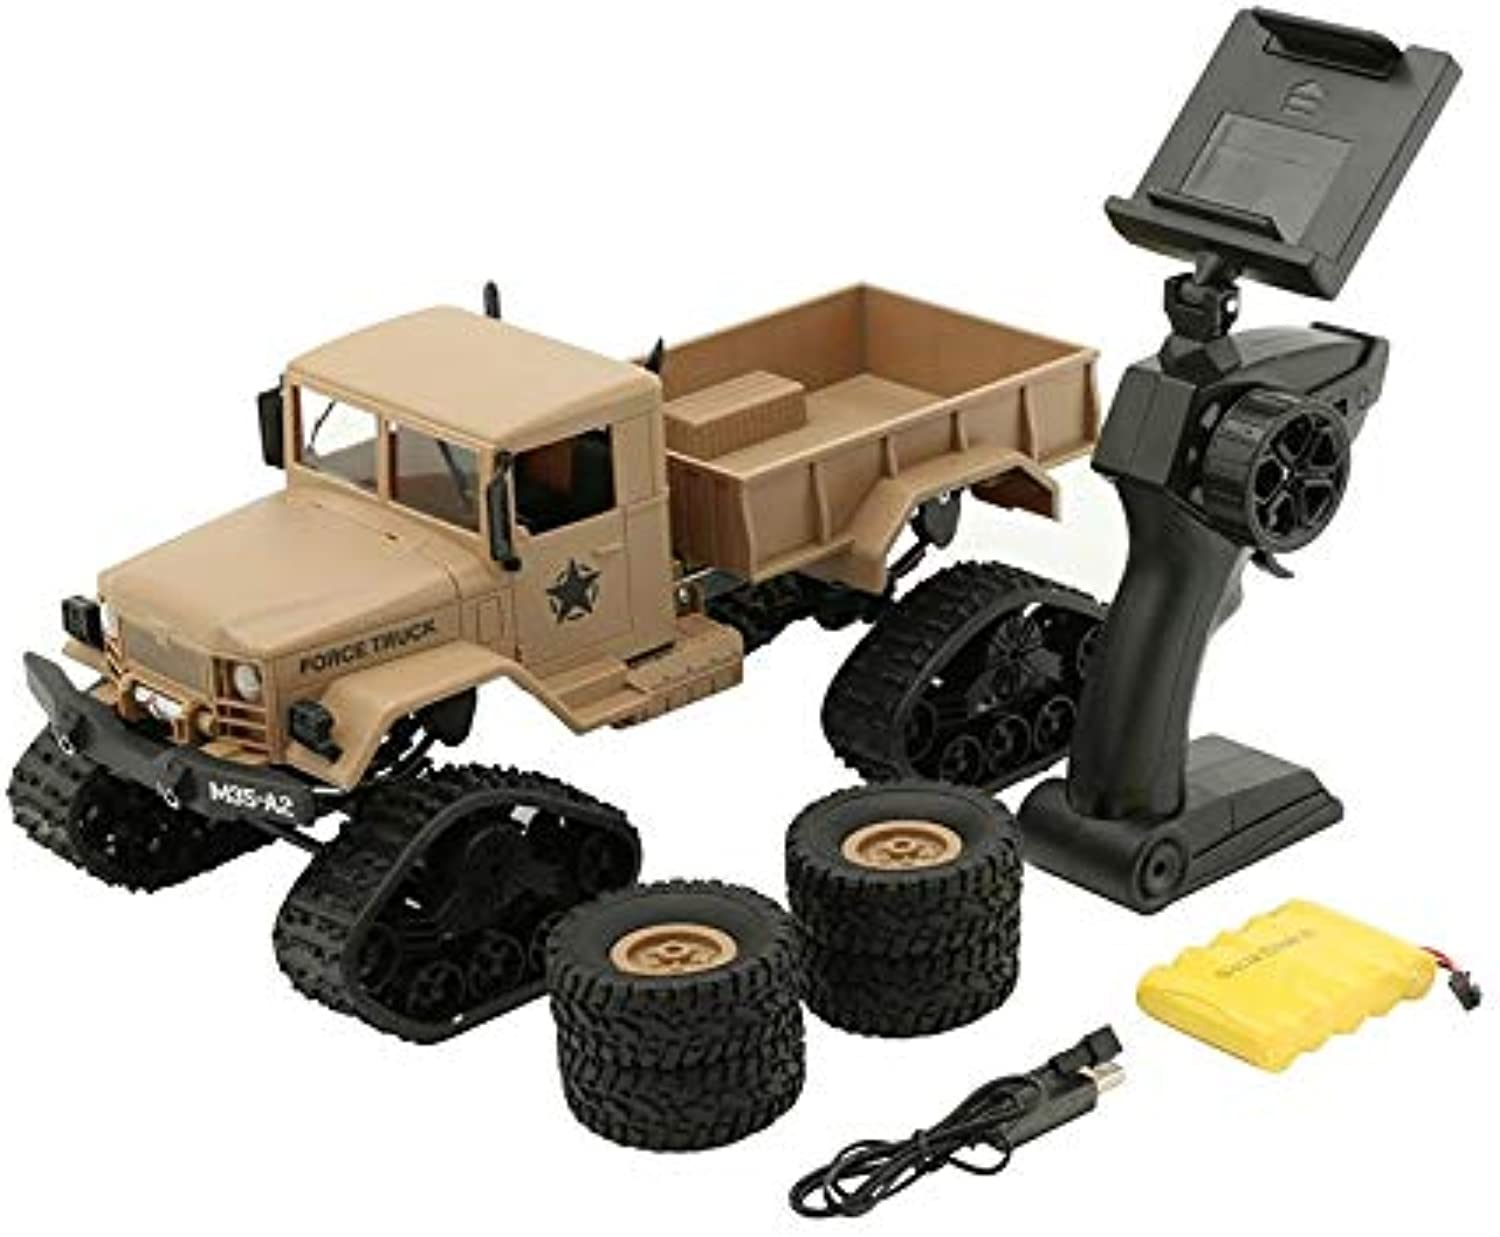 Generic WPL 4WD 1 16 Remote Control Military Truck Replaceable Wheel Drive OffRoad RC Climbing Car Toy No Camera200006154